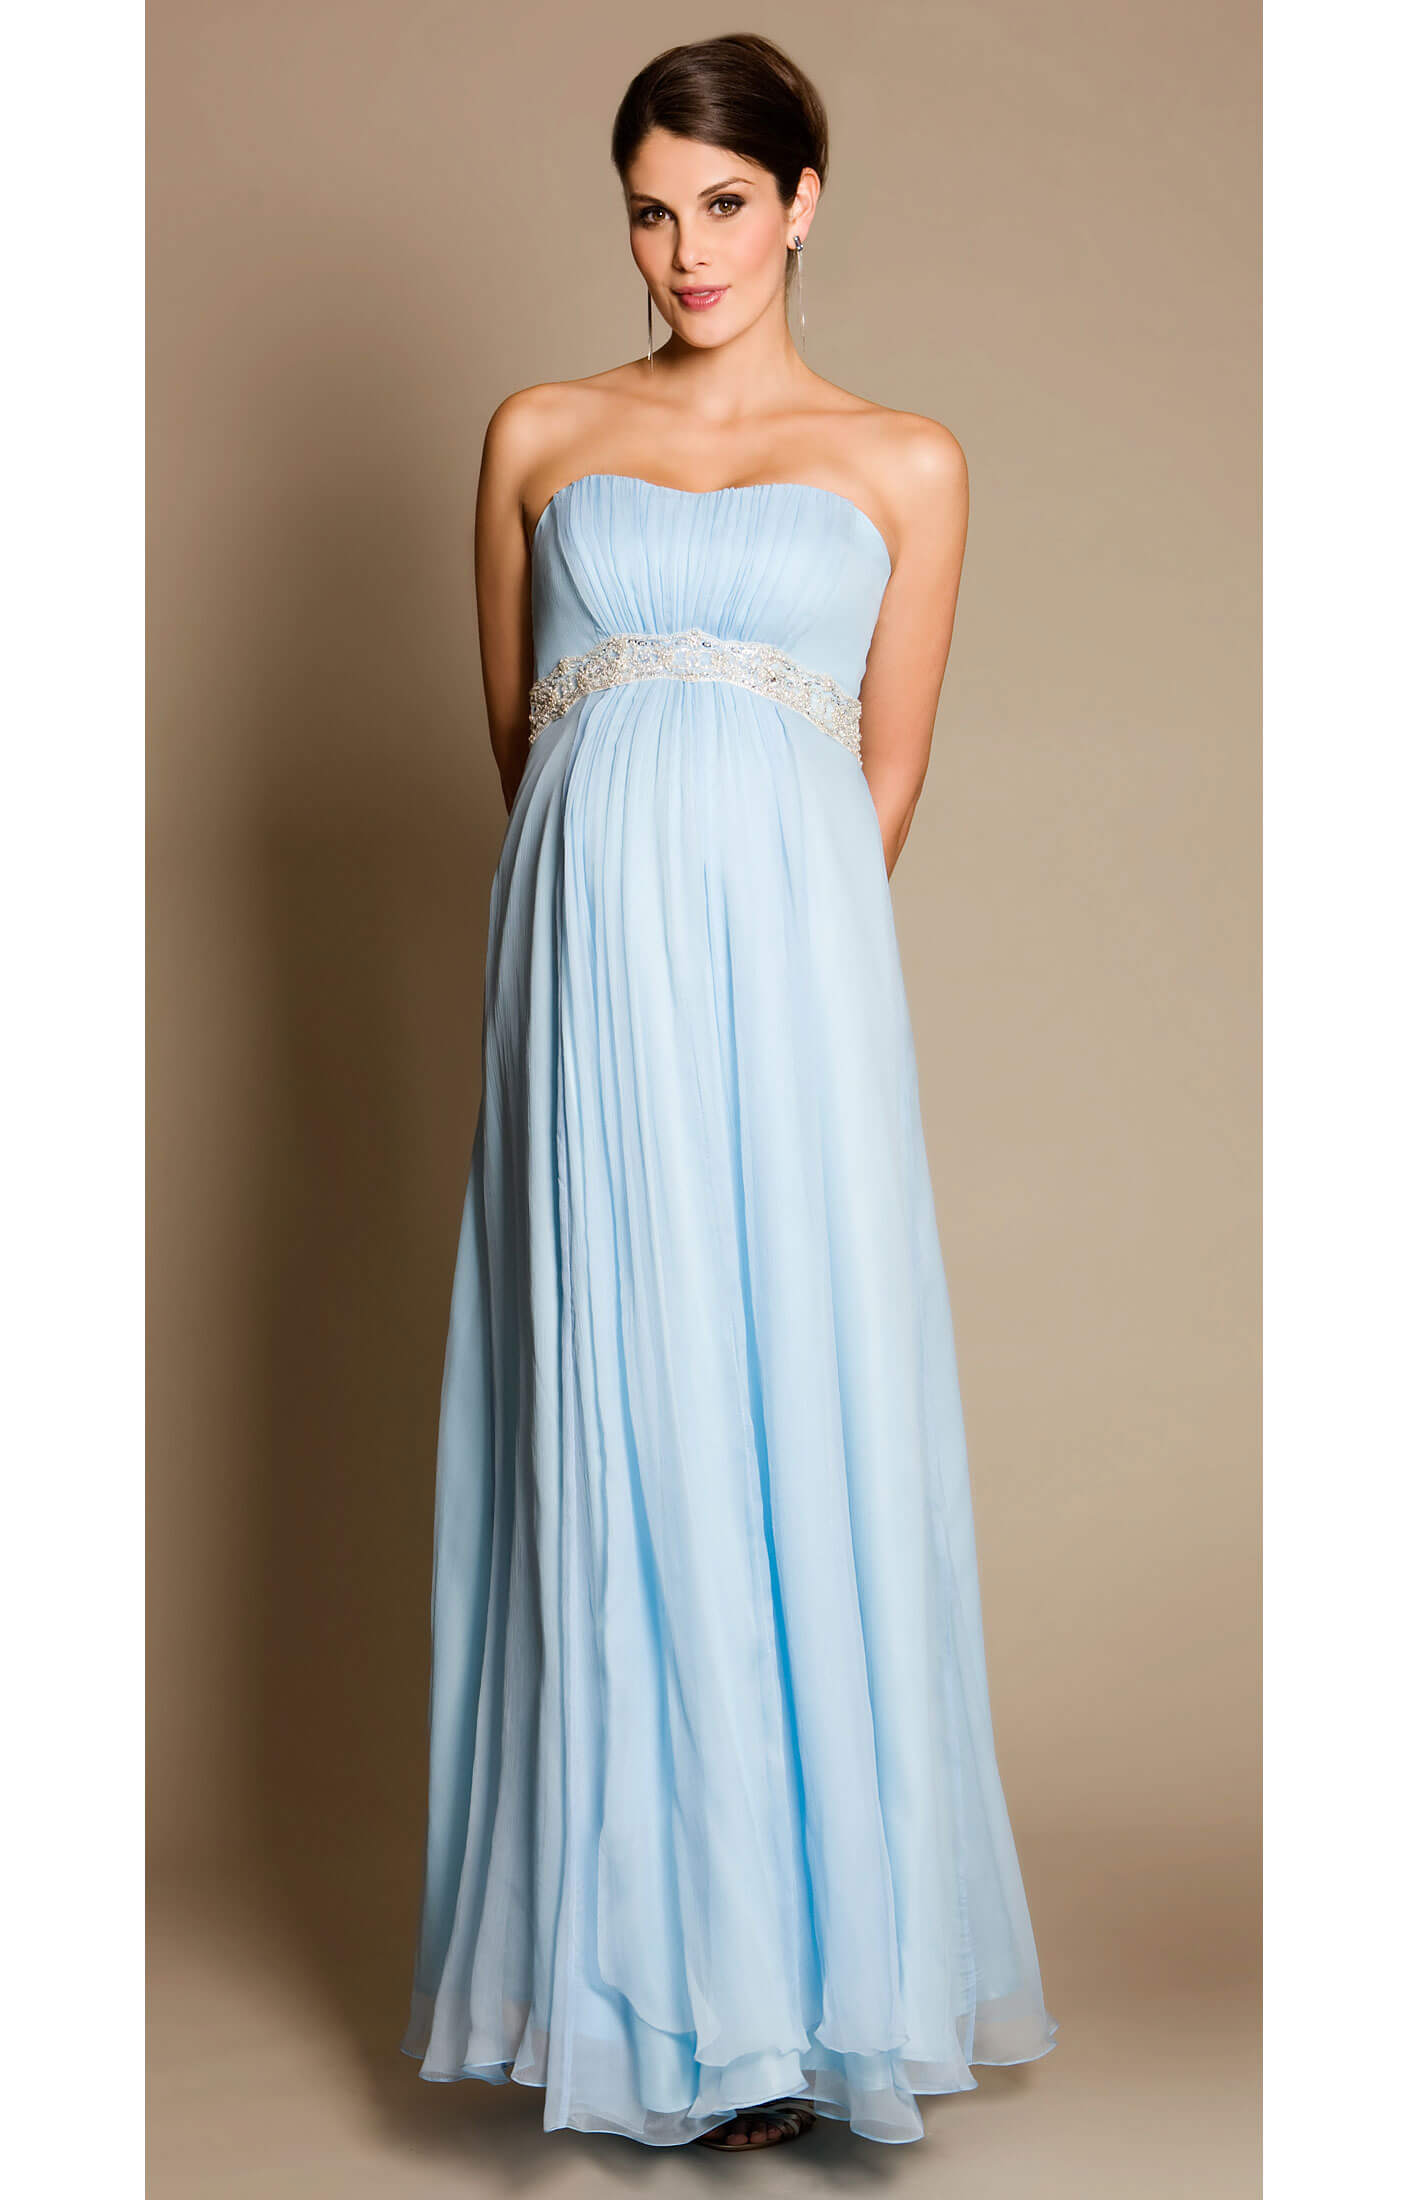 BlueBell Maternity Gown with Diamante Sash - Maternity Wedding ...